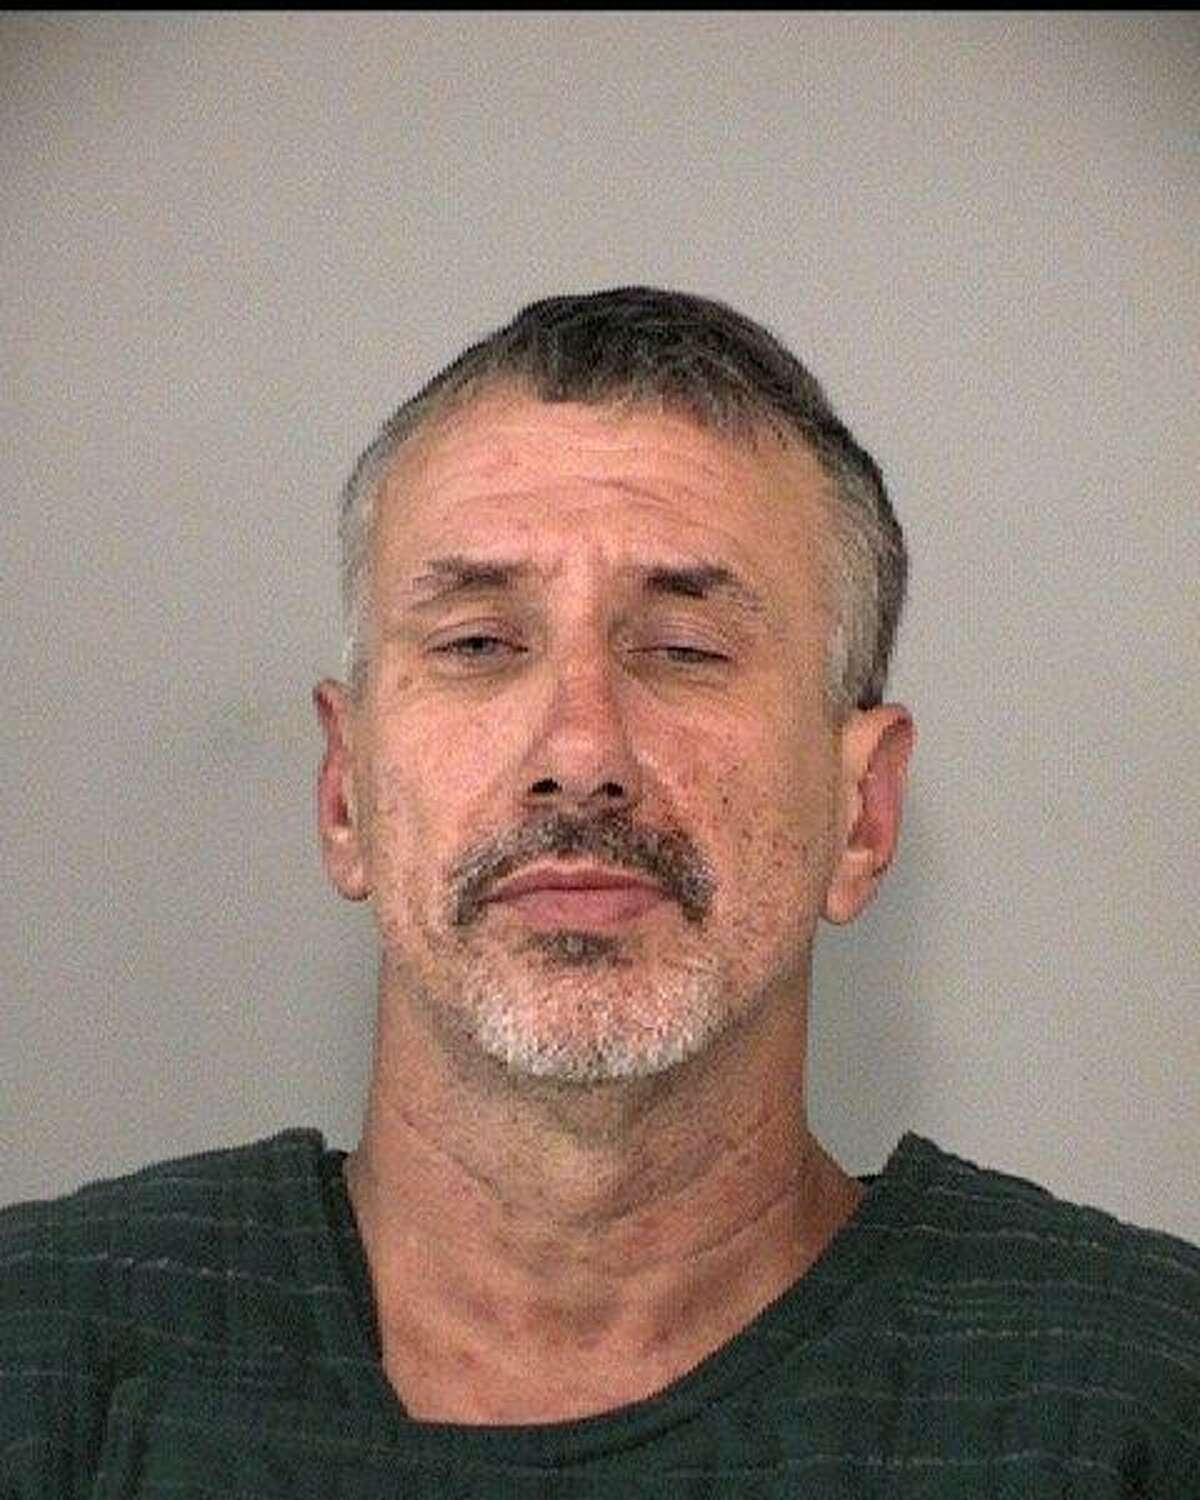 Kenneth Ray McMayon, 50, was arrested for and charged with the murder of his mother on Sunday, Sept. 26, 2021, in Fort Bend County.